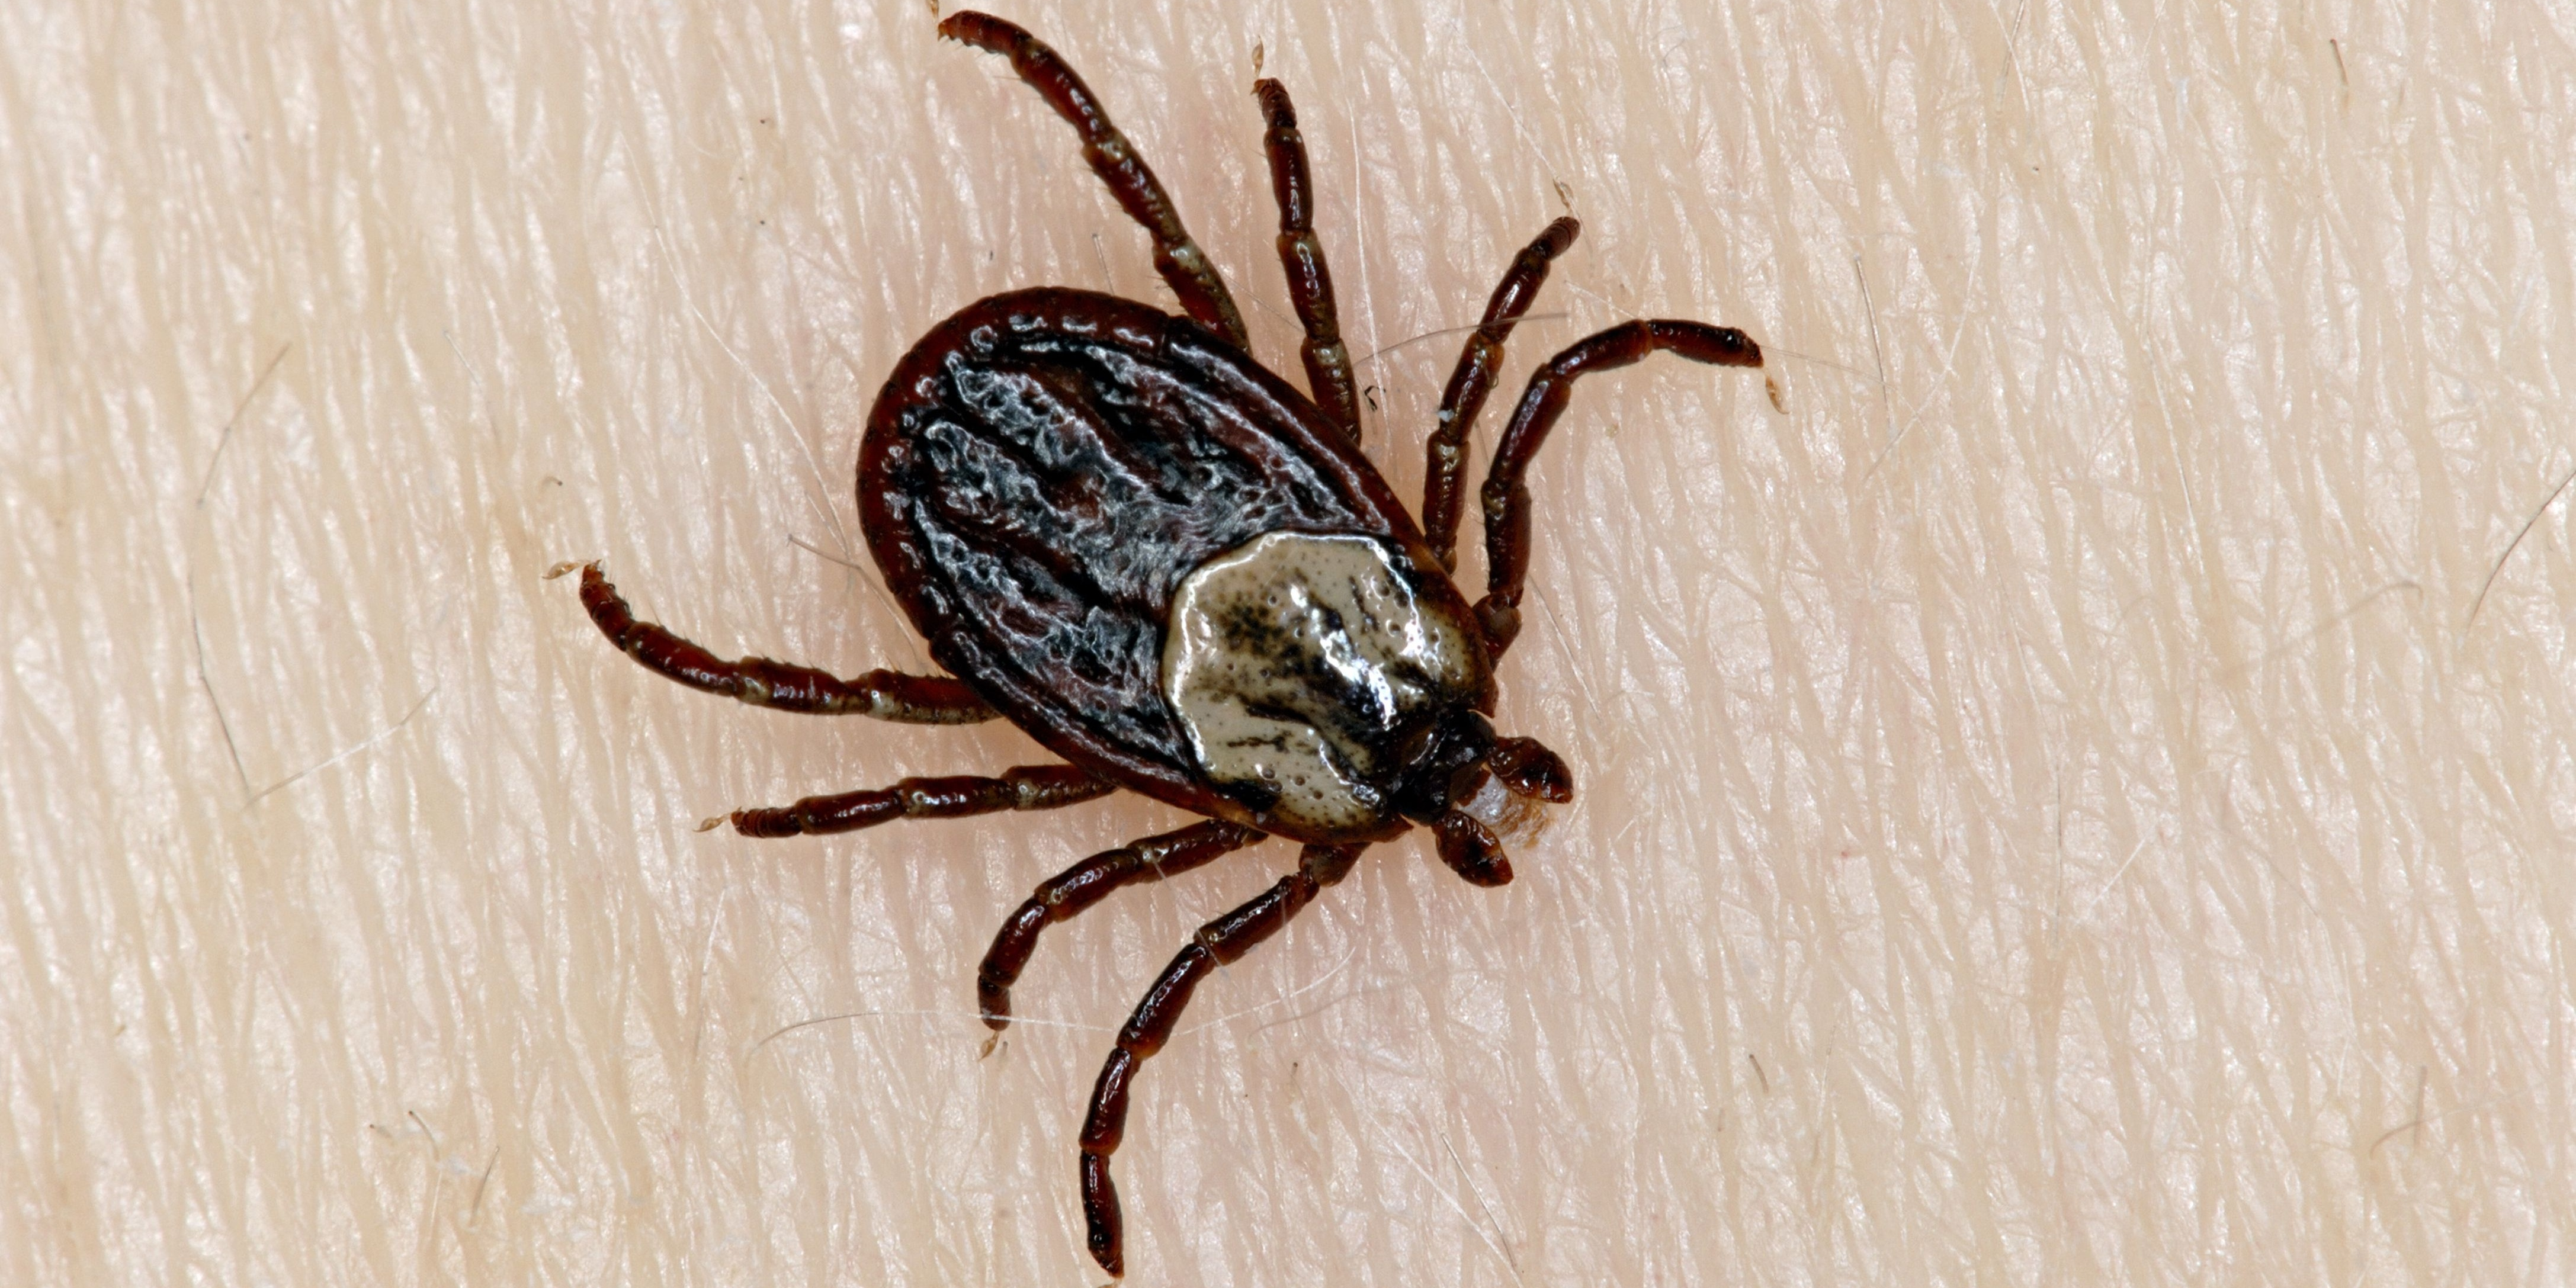 Ticks are arachnids